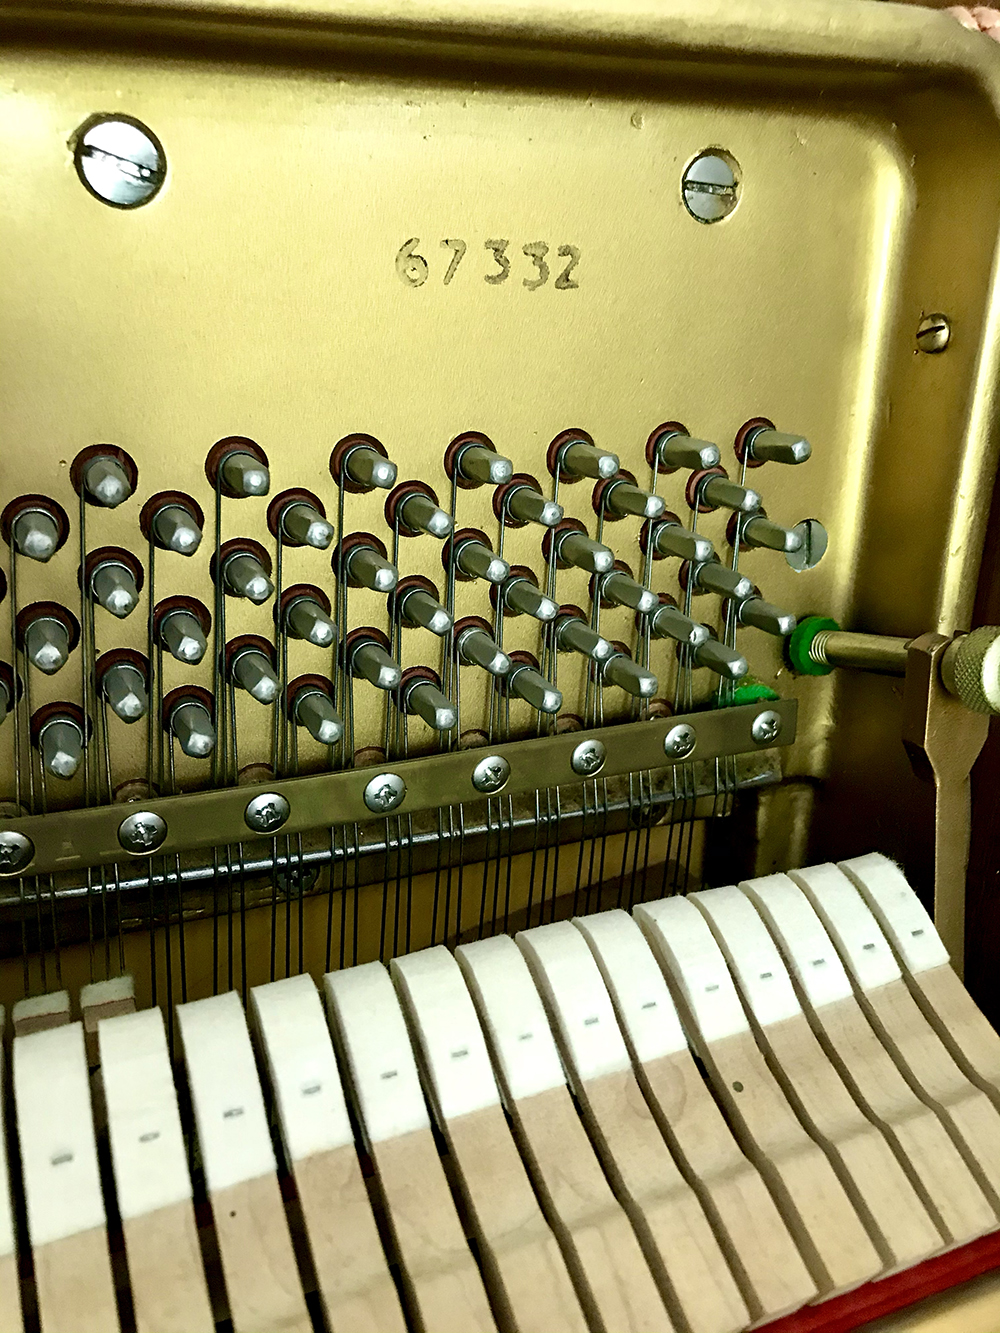 knight-k10-used-upright-Piano-Dorset-for-sale-3.jpg